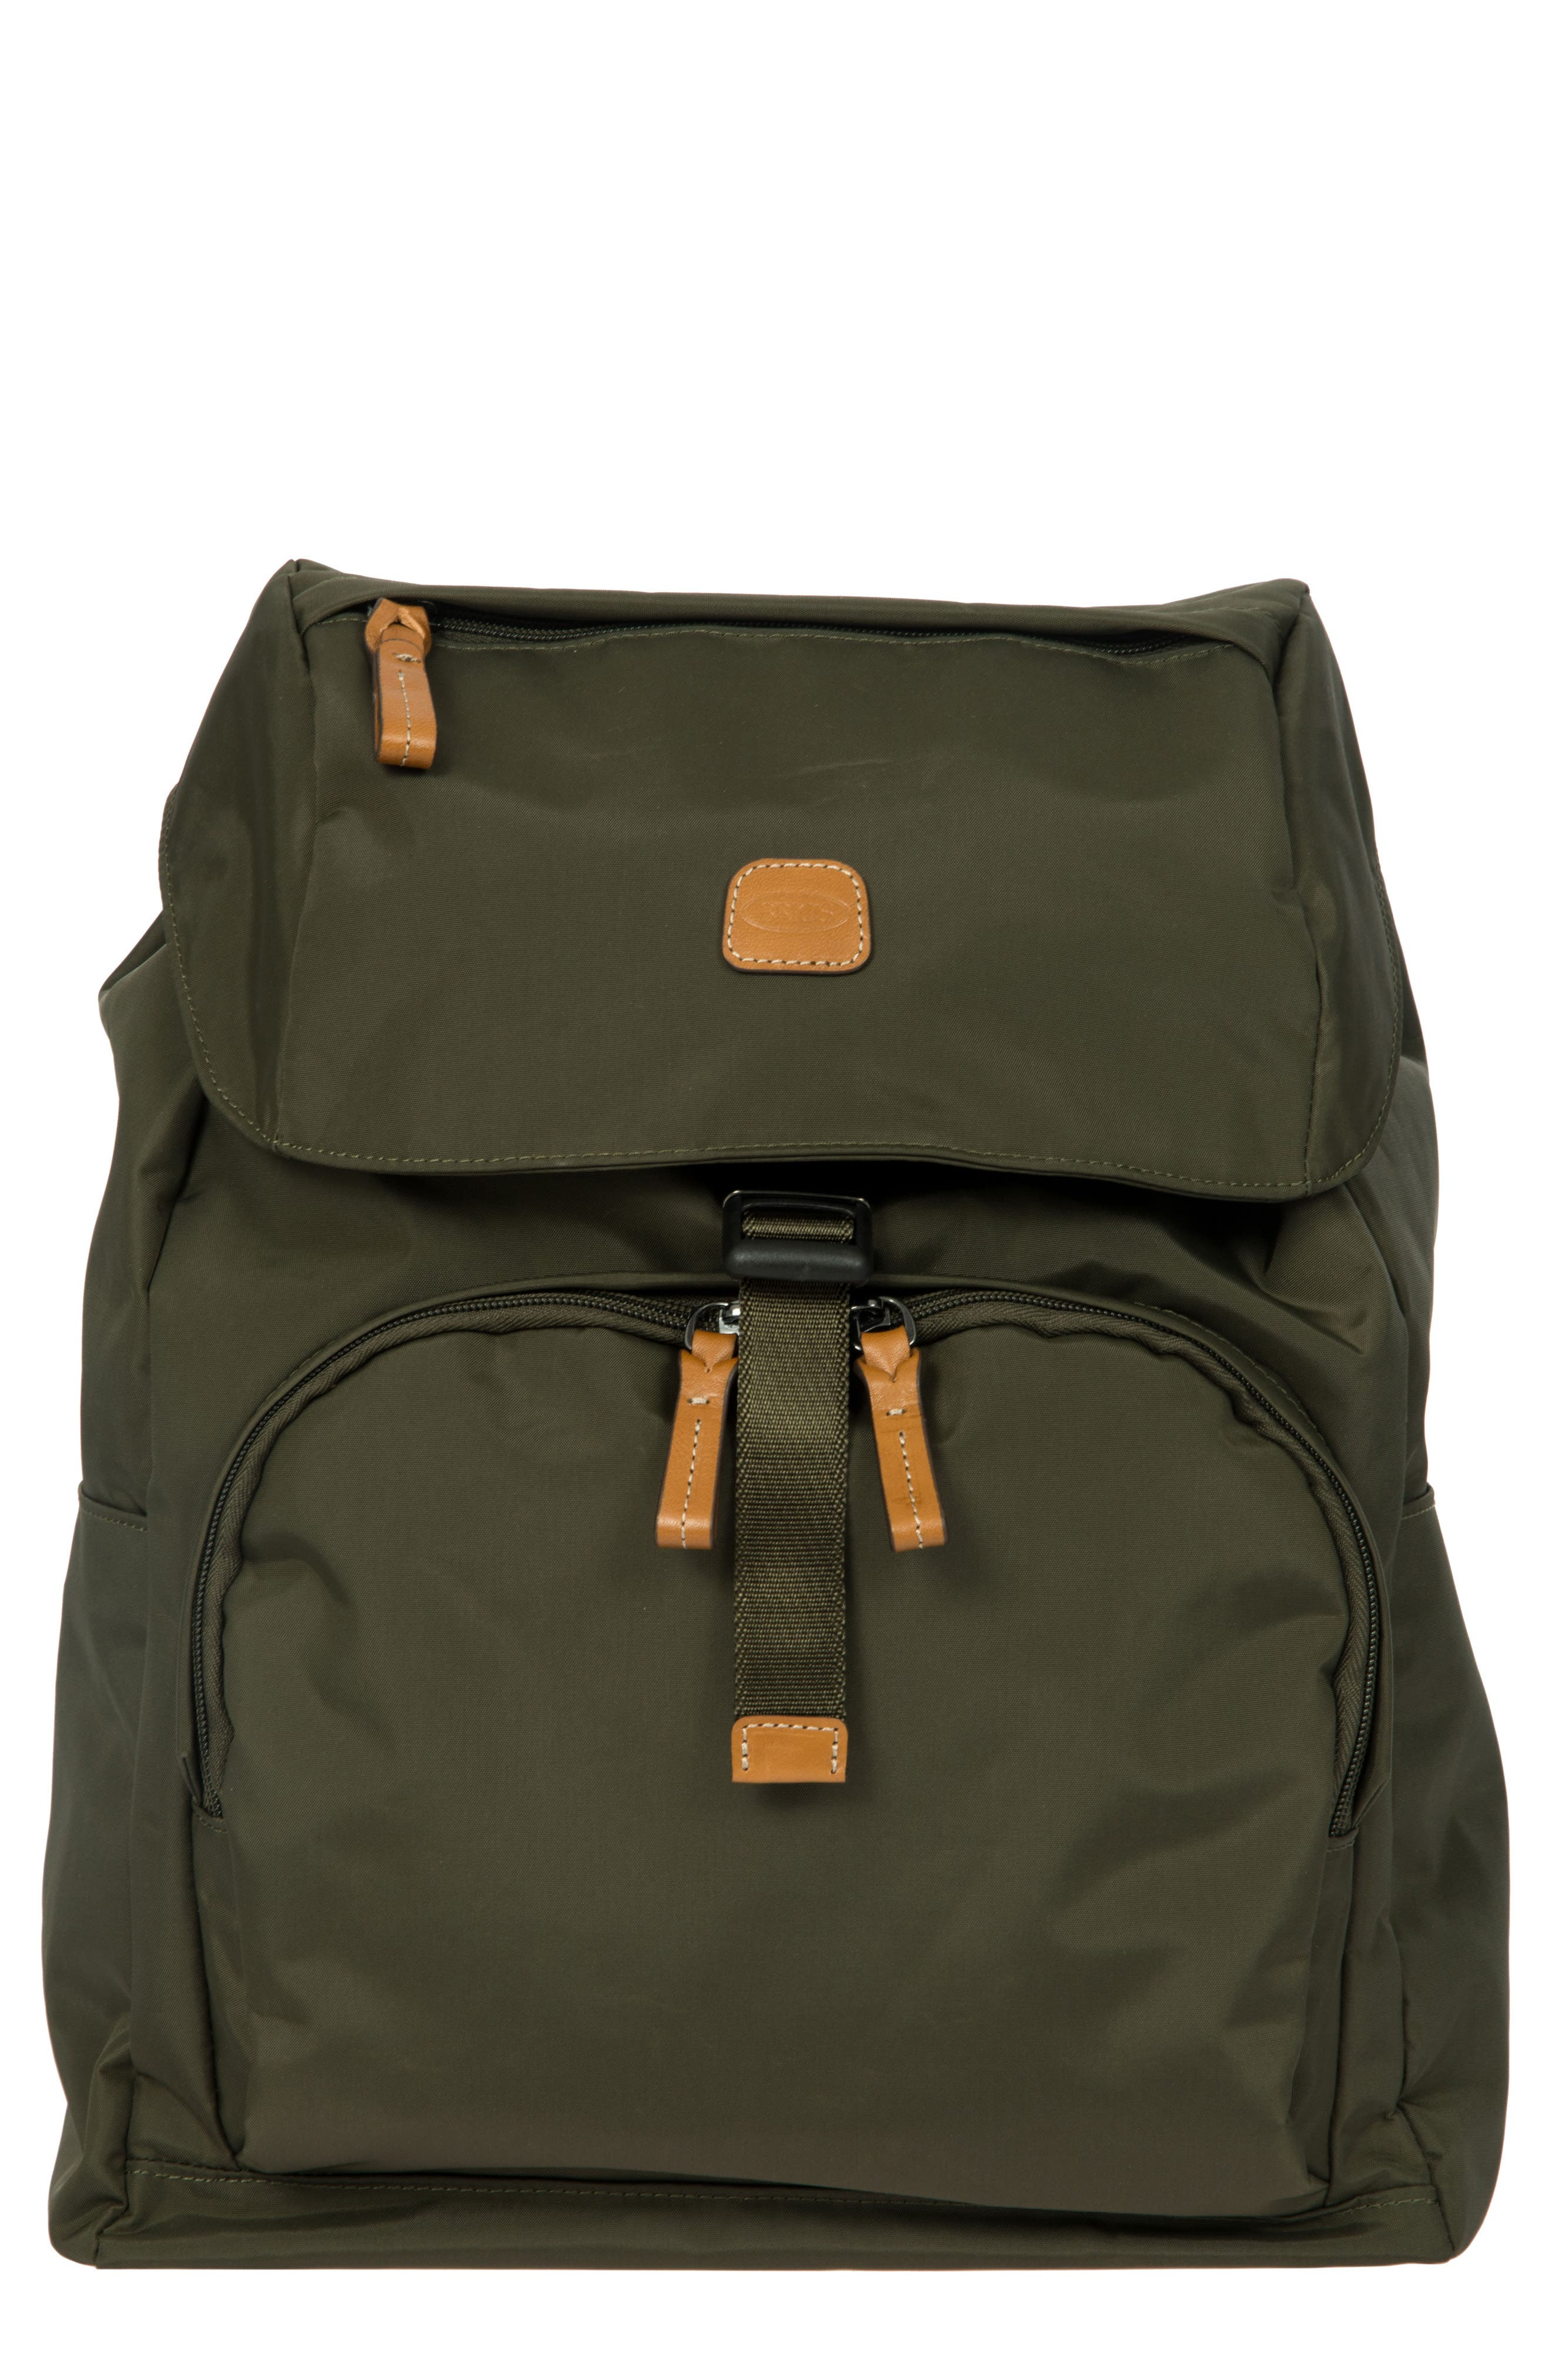 BRIC'S, X-Bag Travel Excursion Backpack, Main thumbnail 1, color, OLIVE